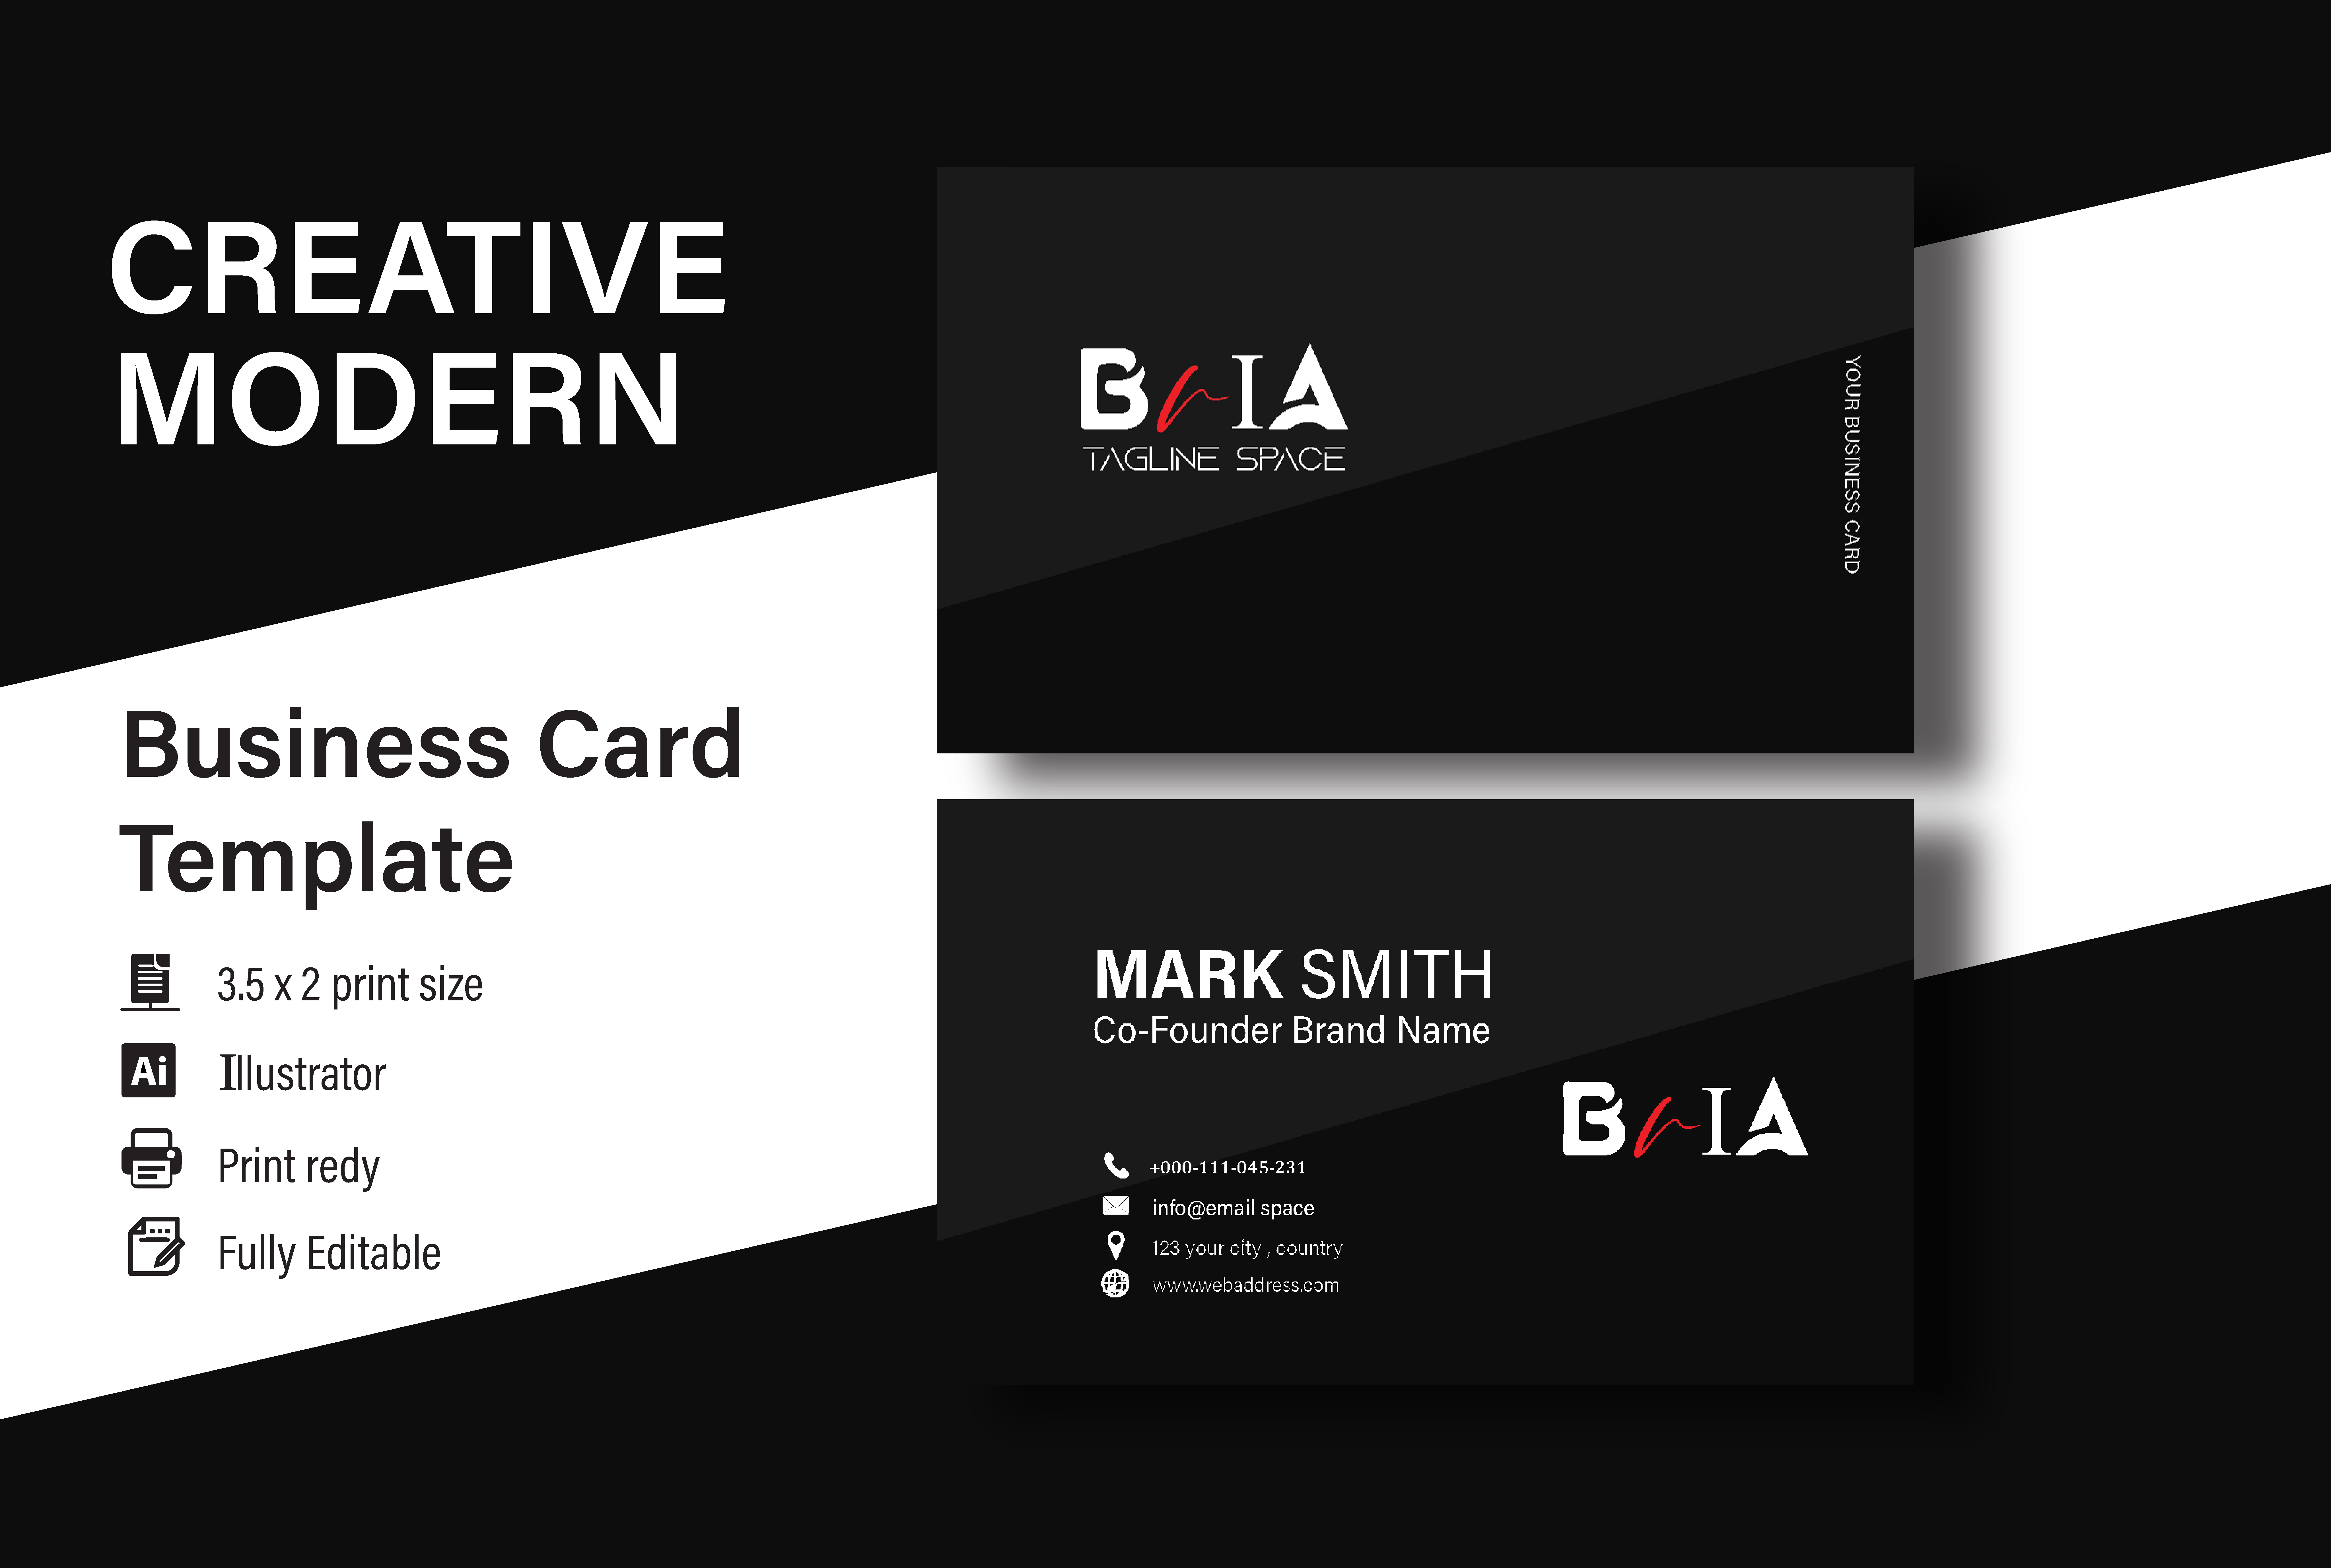 I will design professional eye caching business card